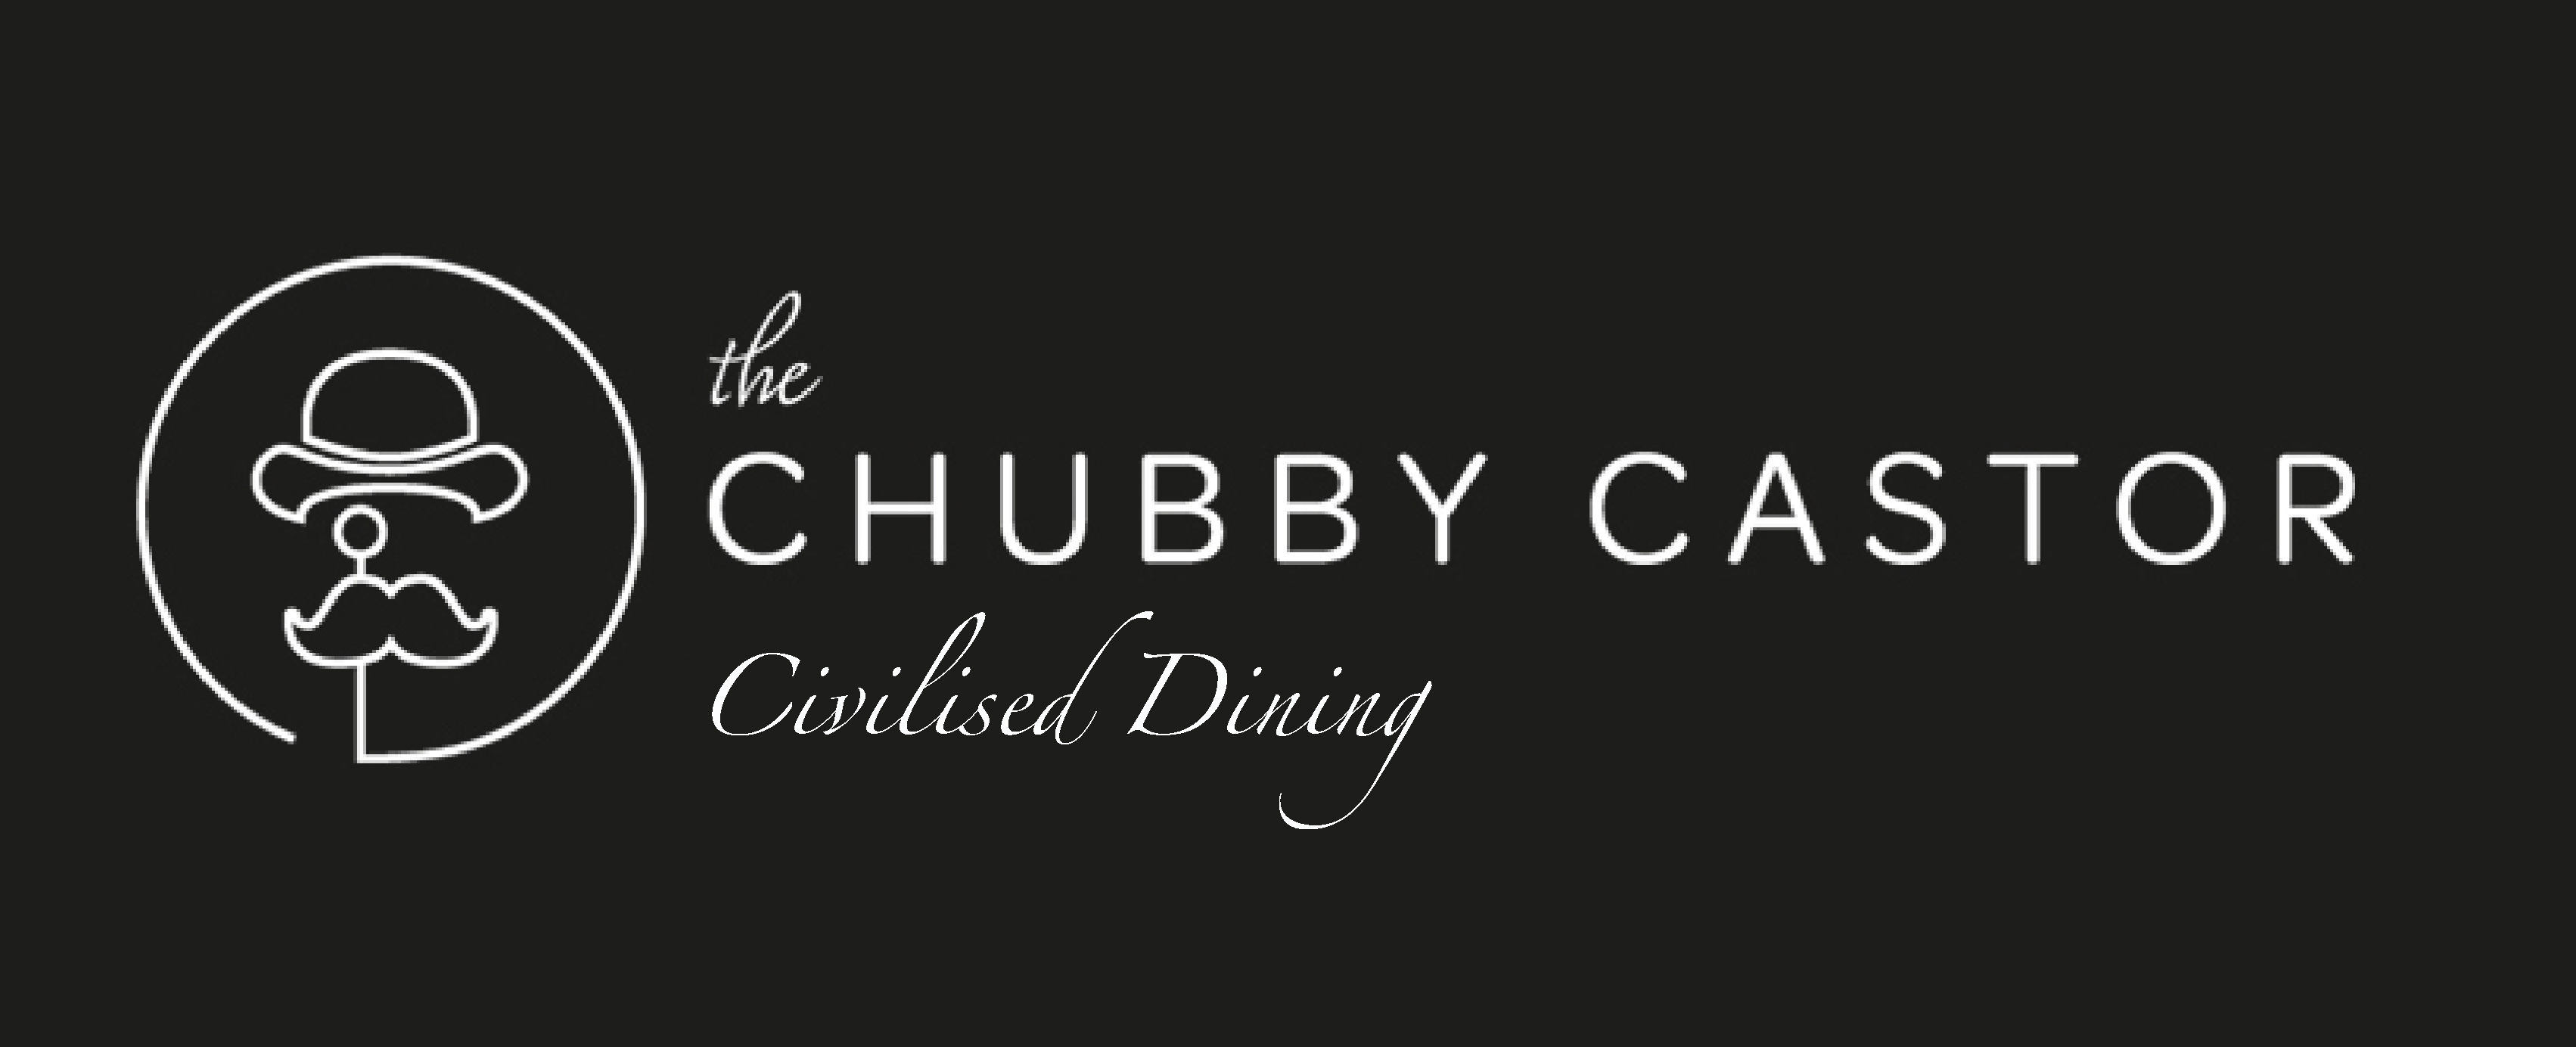 the-chubby-castor-wide-logo_cdv2